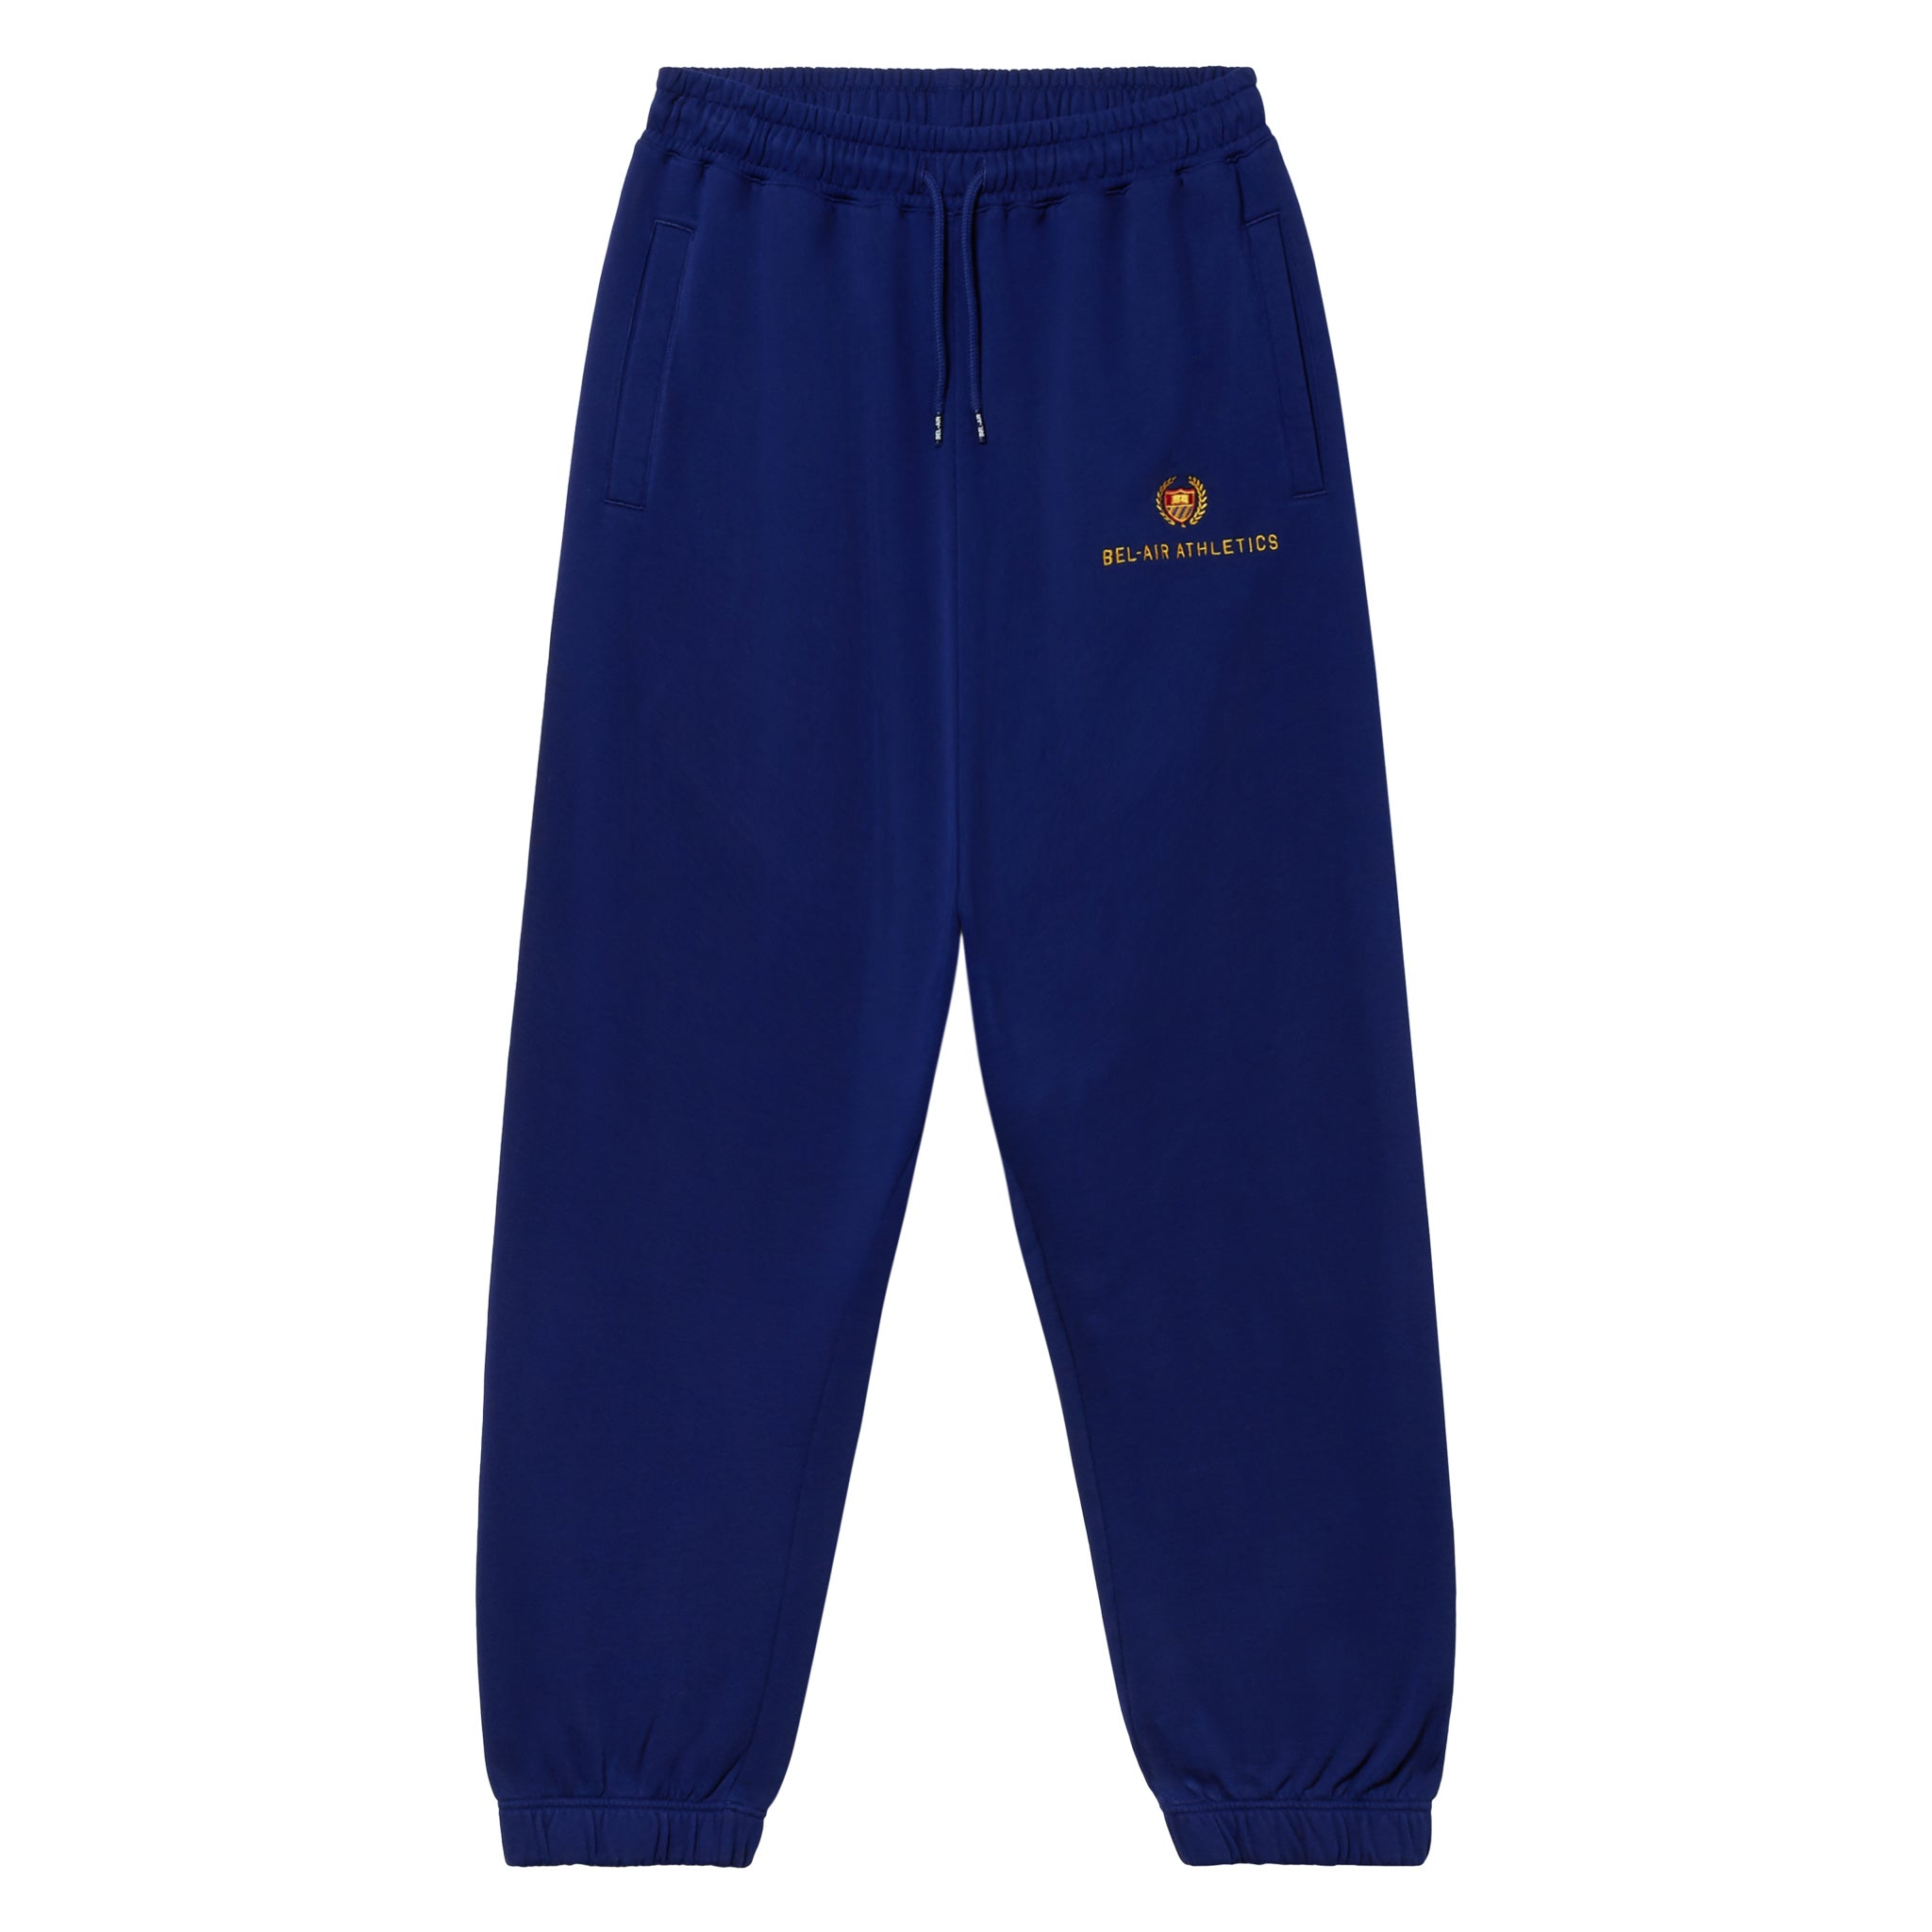 Academy Crest Sweatpant - Bel-Air Blue